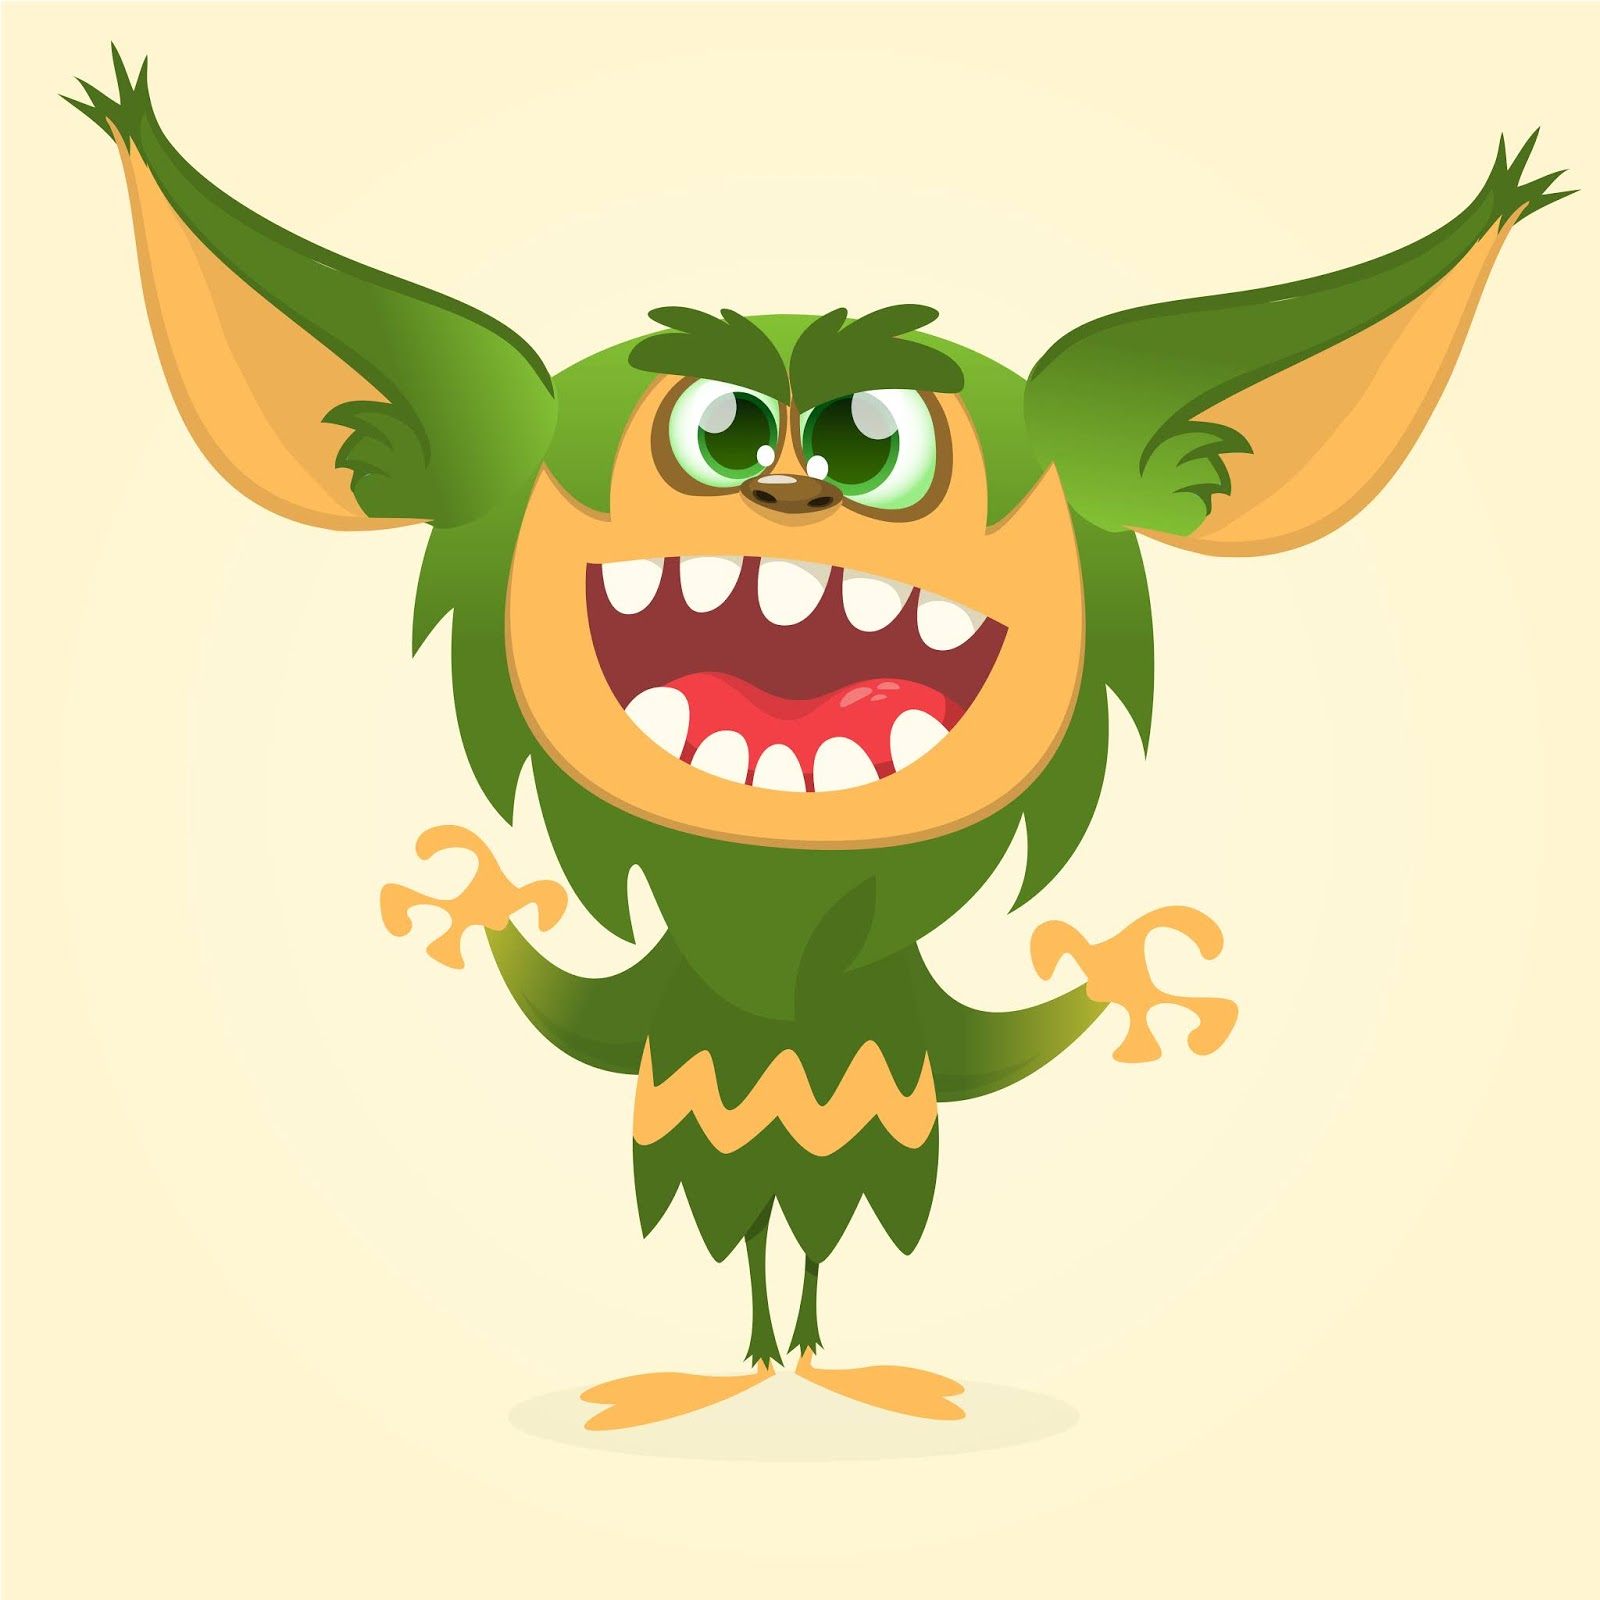 Cartoon Funny Monster Illustration Cool Free Download Vector CDR, AI, EPS and PNG Formats